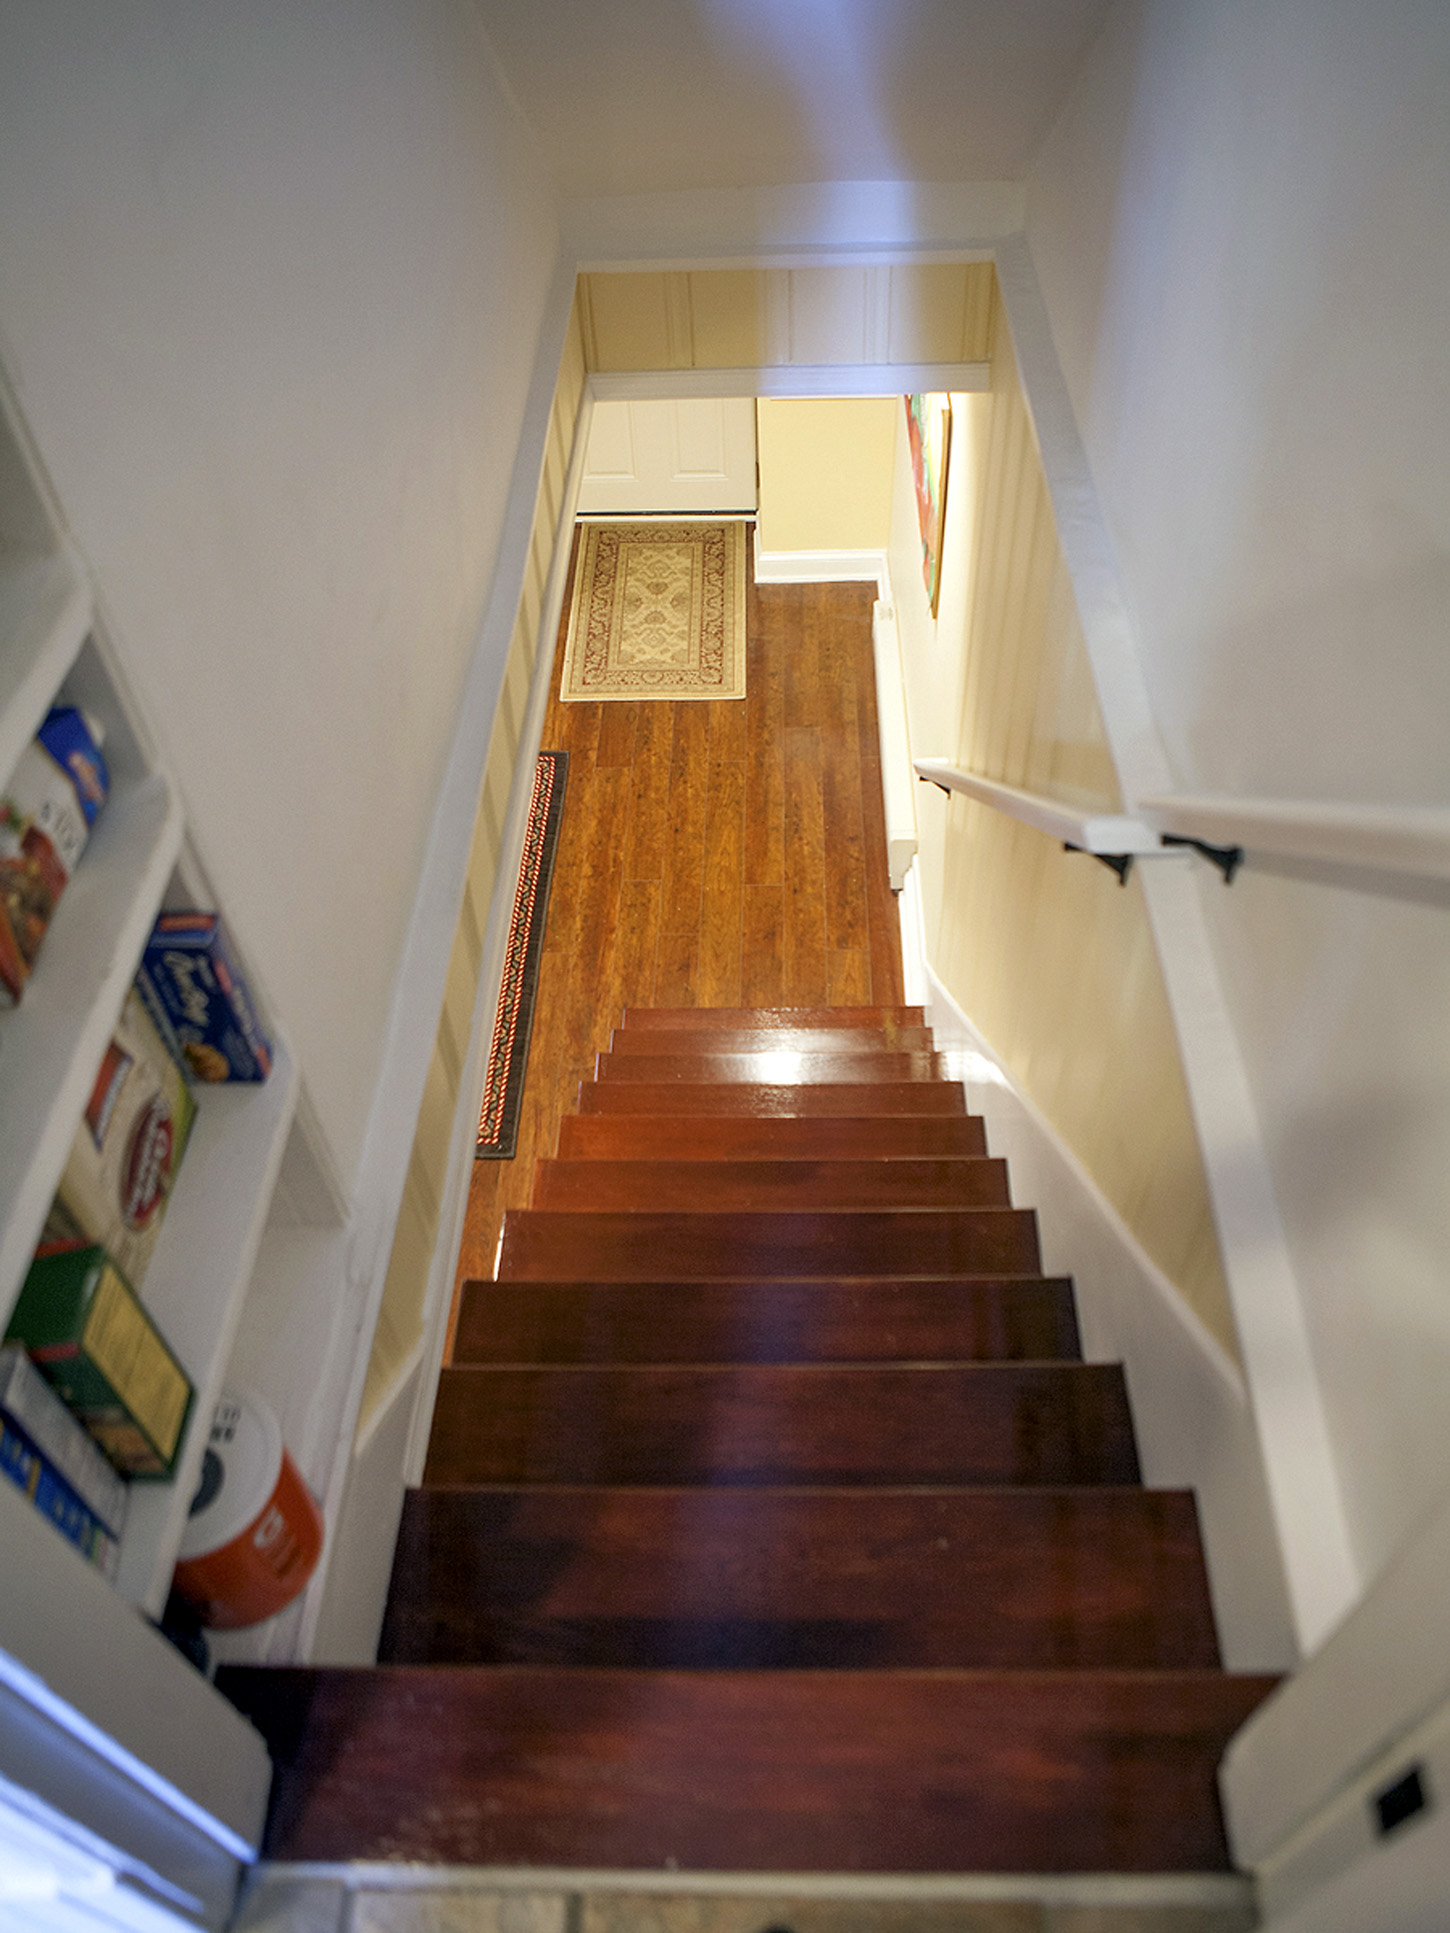 basement stairs looking down. Utility Room Exit  HomeVisit Virtual Tour